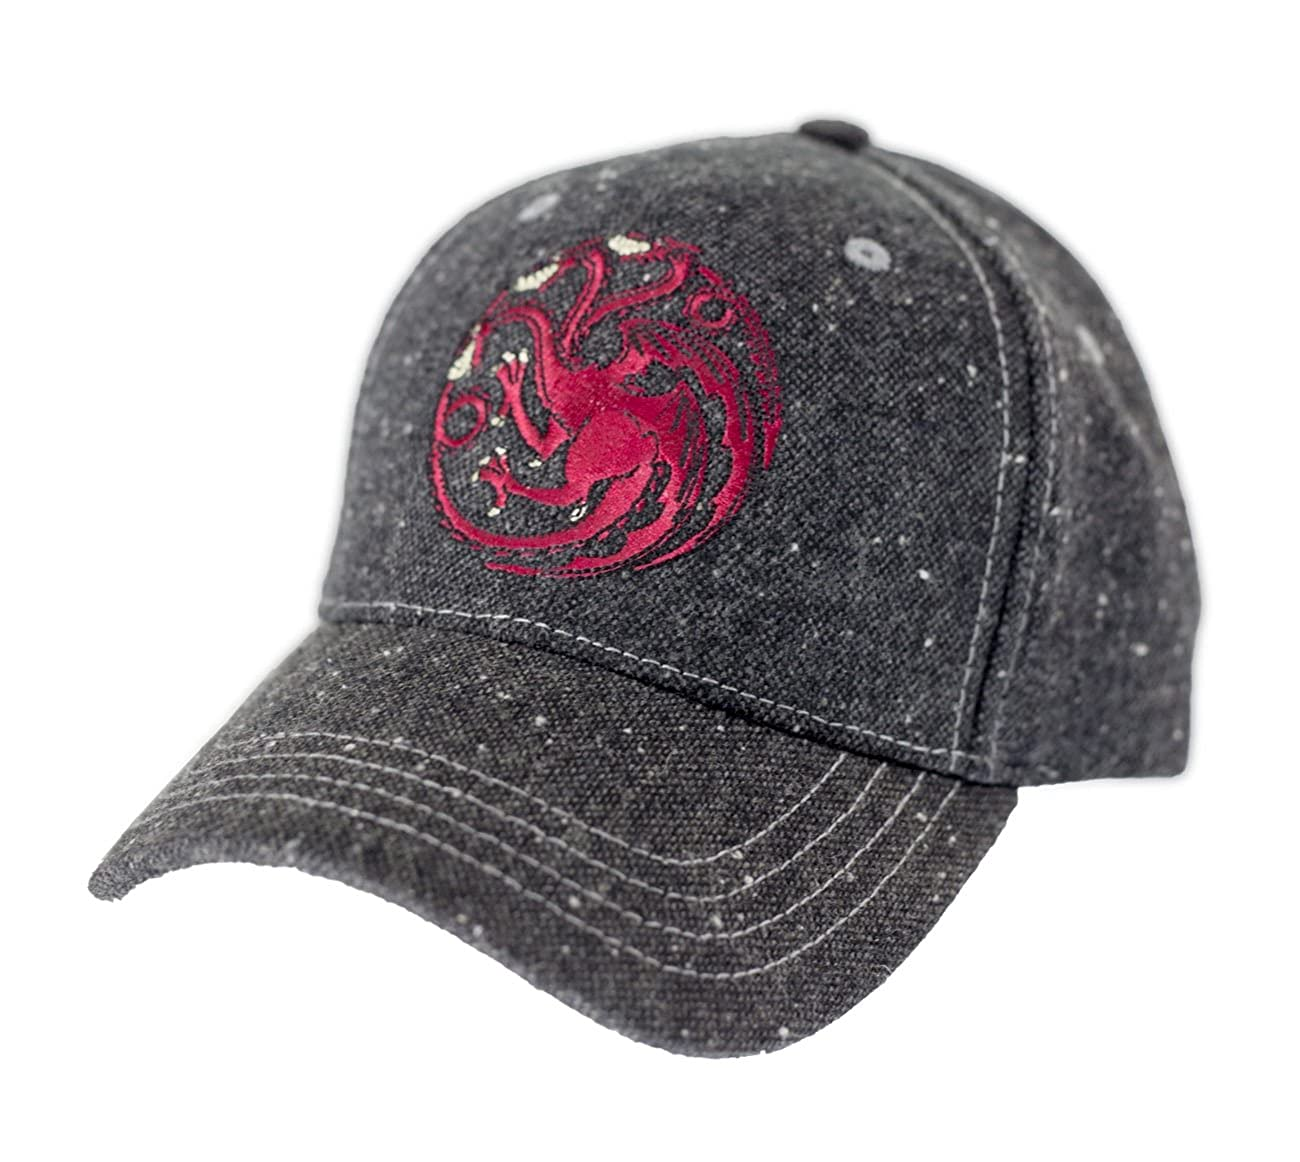 Amazon.com: Game of Thrones Flecked Fabric Premium Baseball Hat (Stark): Clothing